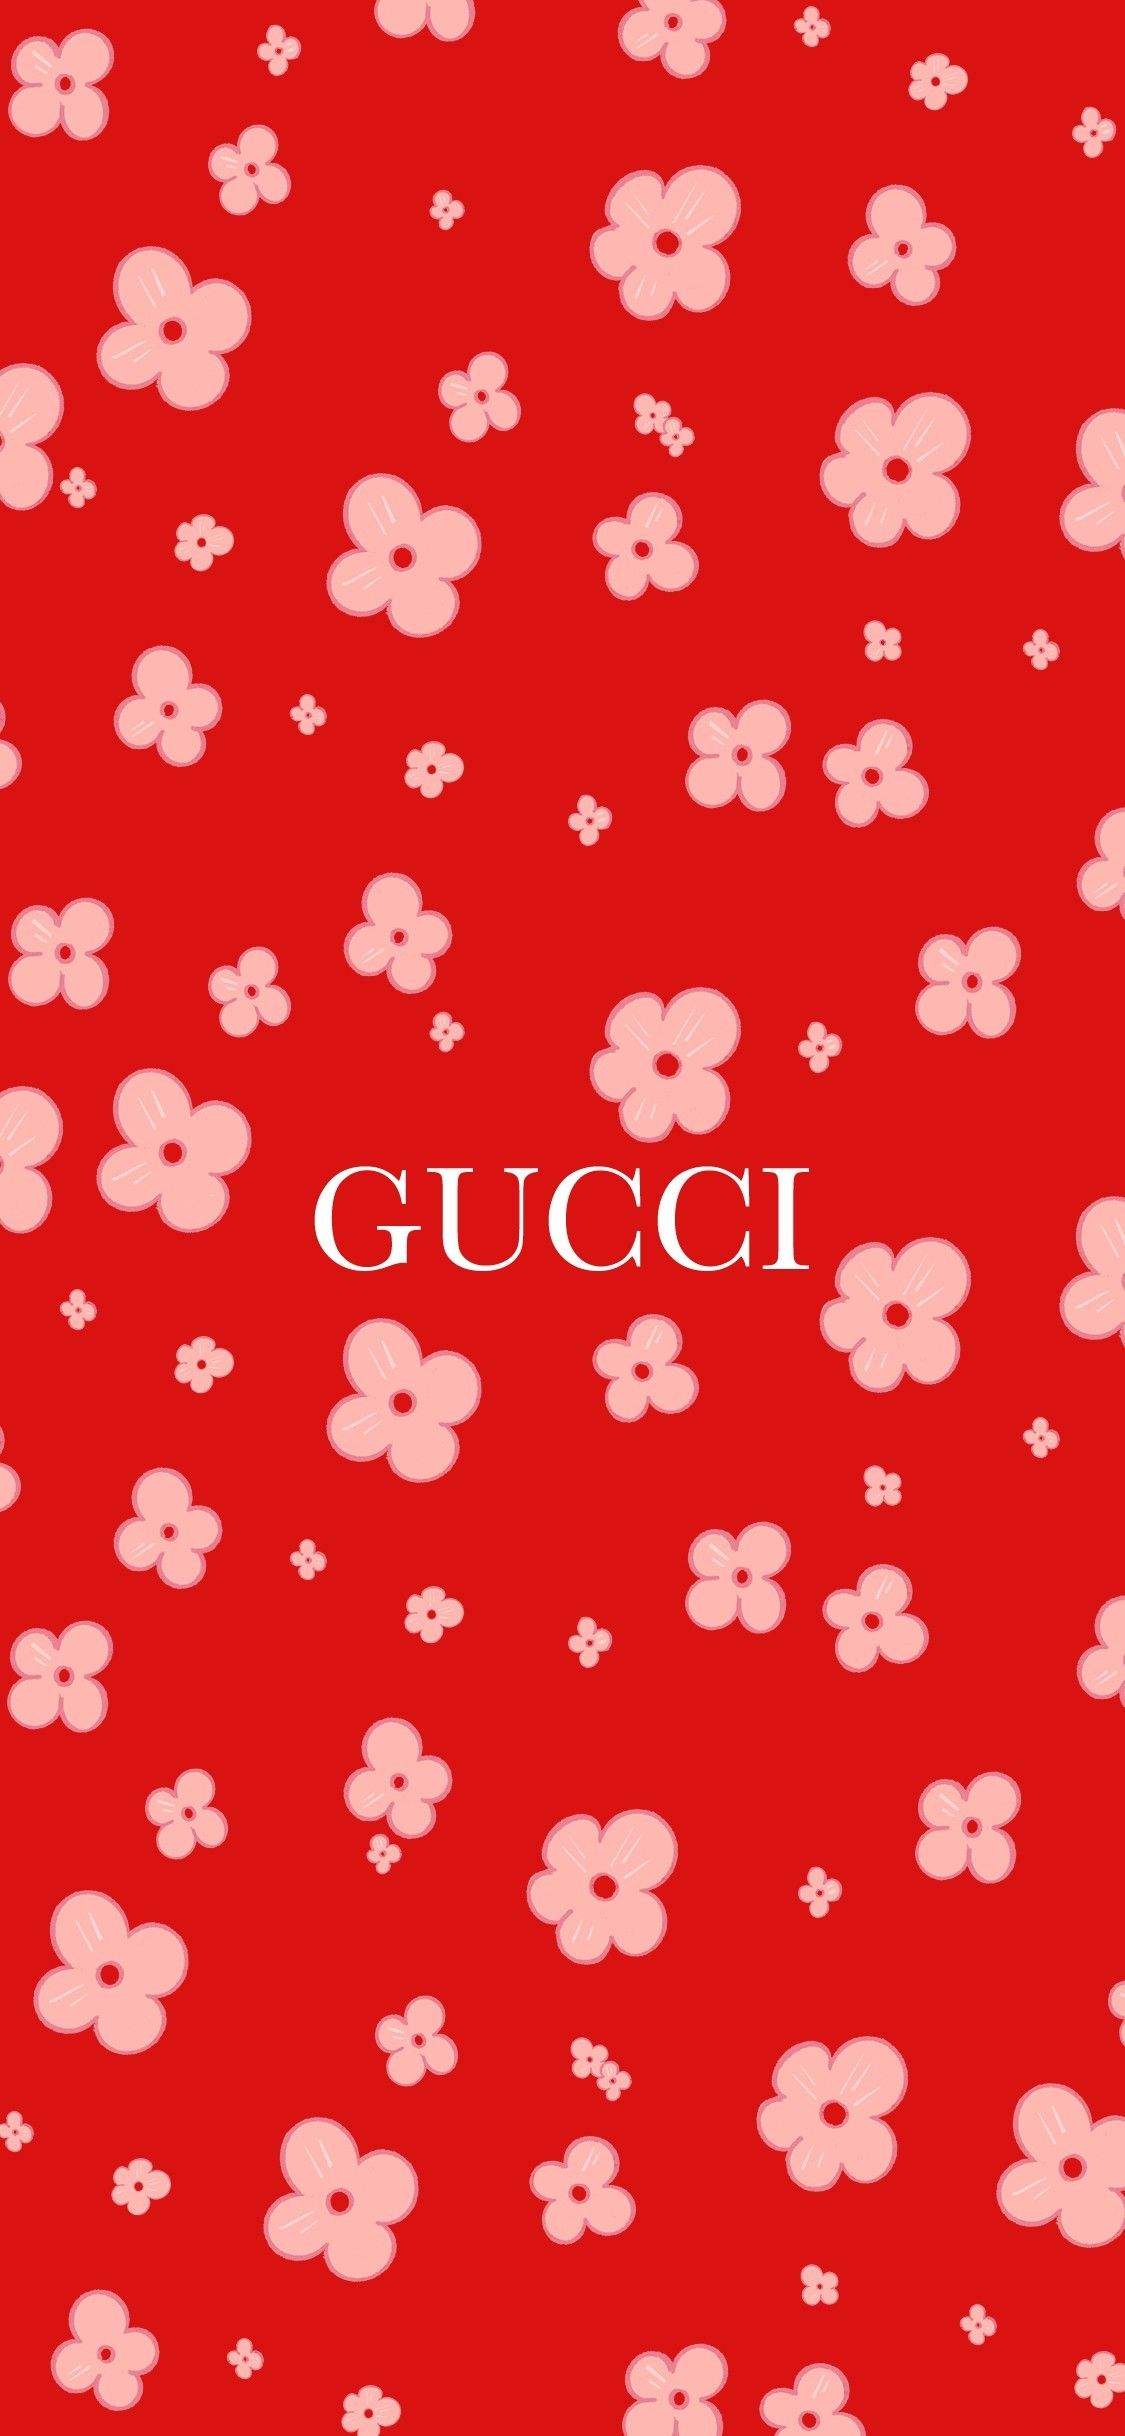 Pin By Esti On Gucci Wallpapers Iphone Wallpaper Girly Wallpaper Iphone Cute Iphone Background Wallpaper